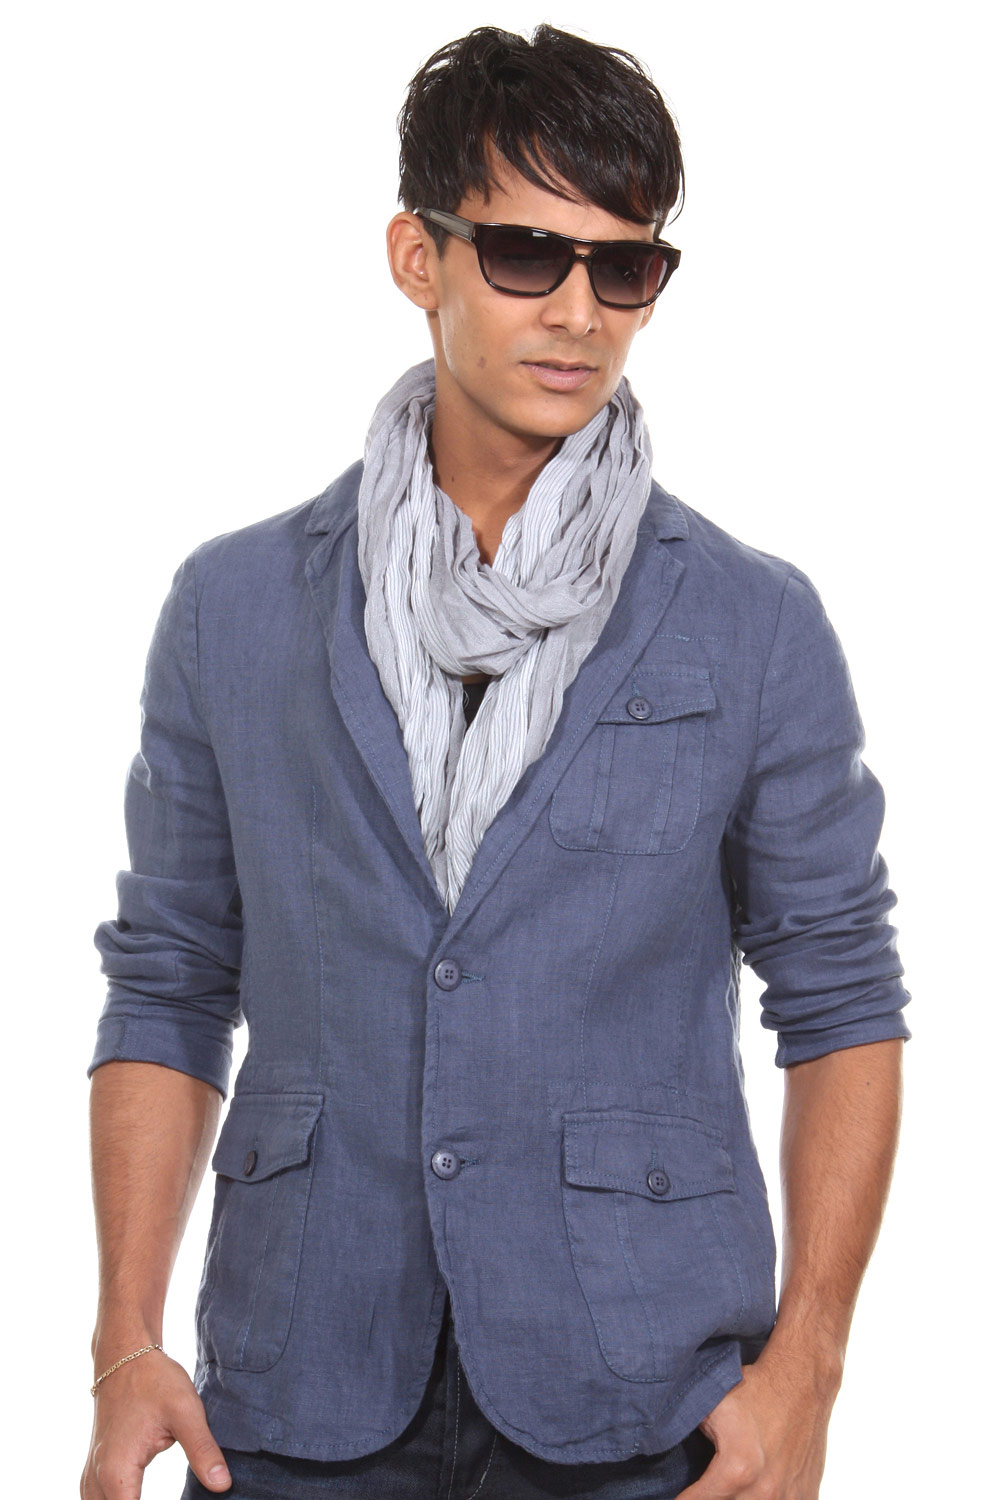 ICEBOYS blazer regular fit at oboy.com